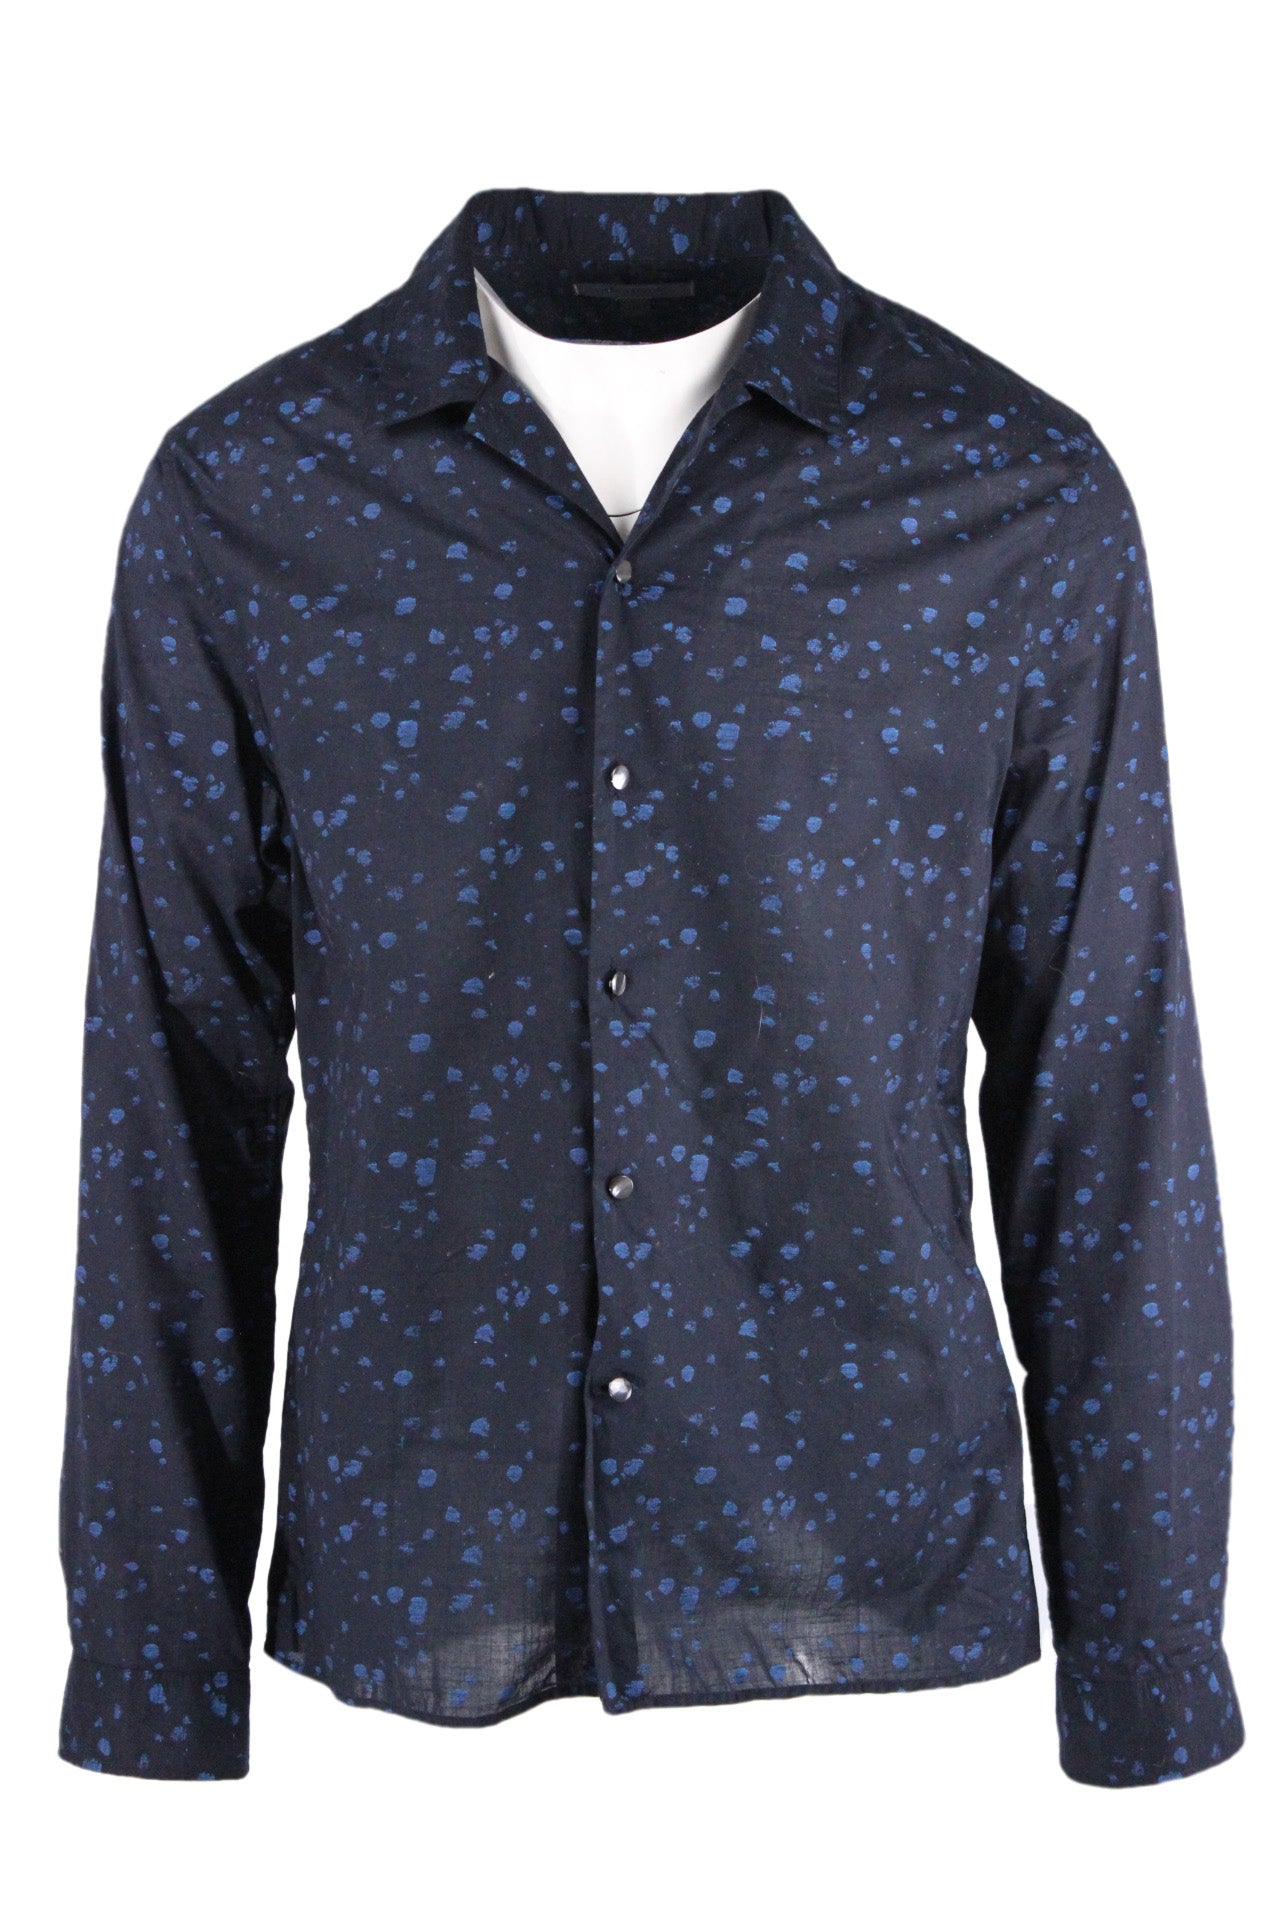 john varvatos black and cerulean blue semi-sheer speckled long sleeve shirt. features spatter-like bright blue print on reverse, leaving a distressed finish on exterior print. convertible collar with pearlized front button closure in a regular cut.